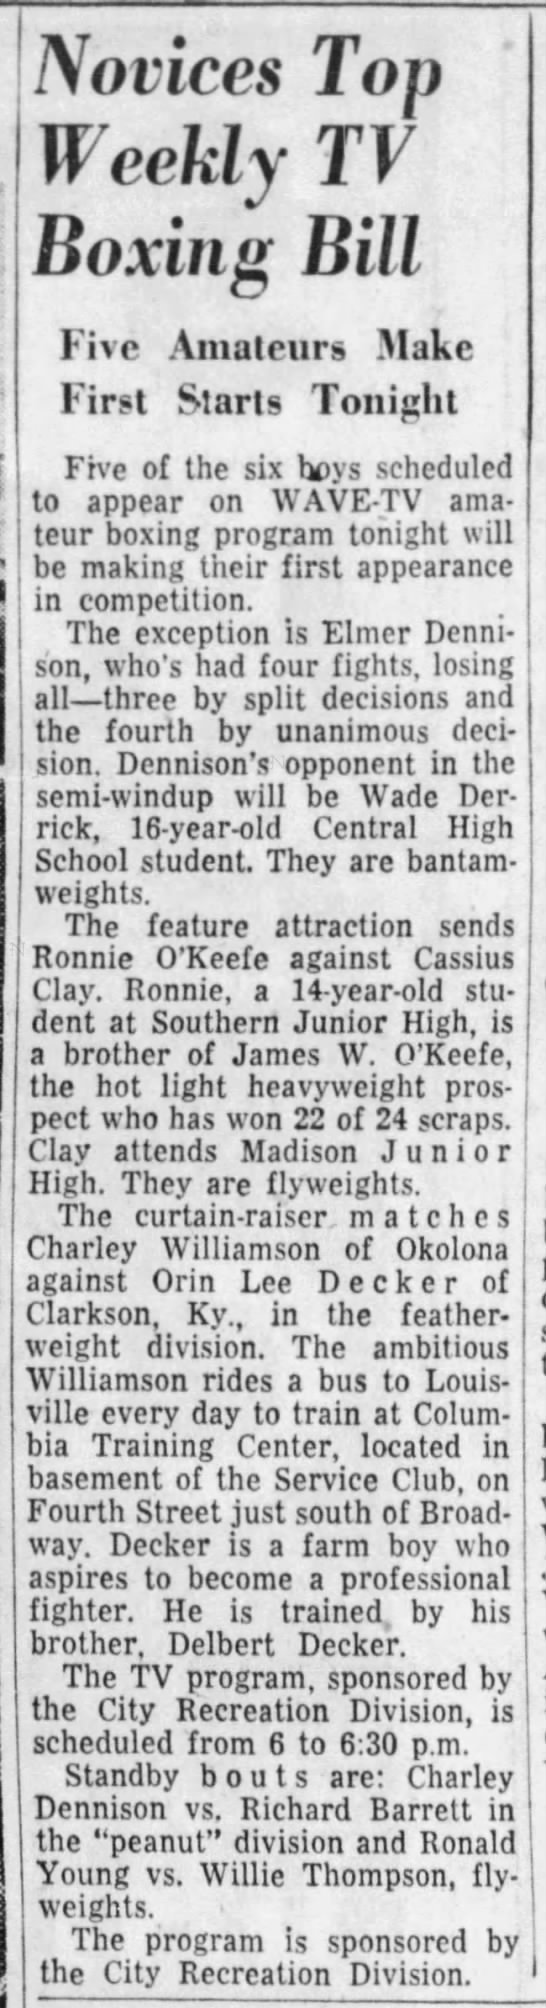 Cassius Clay makes first appearance on amateur boxing TV program in 1954 -